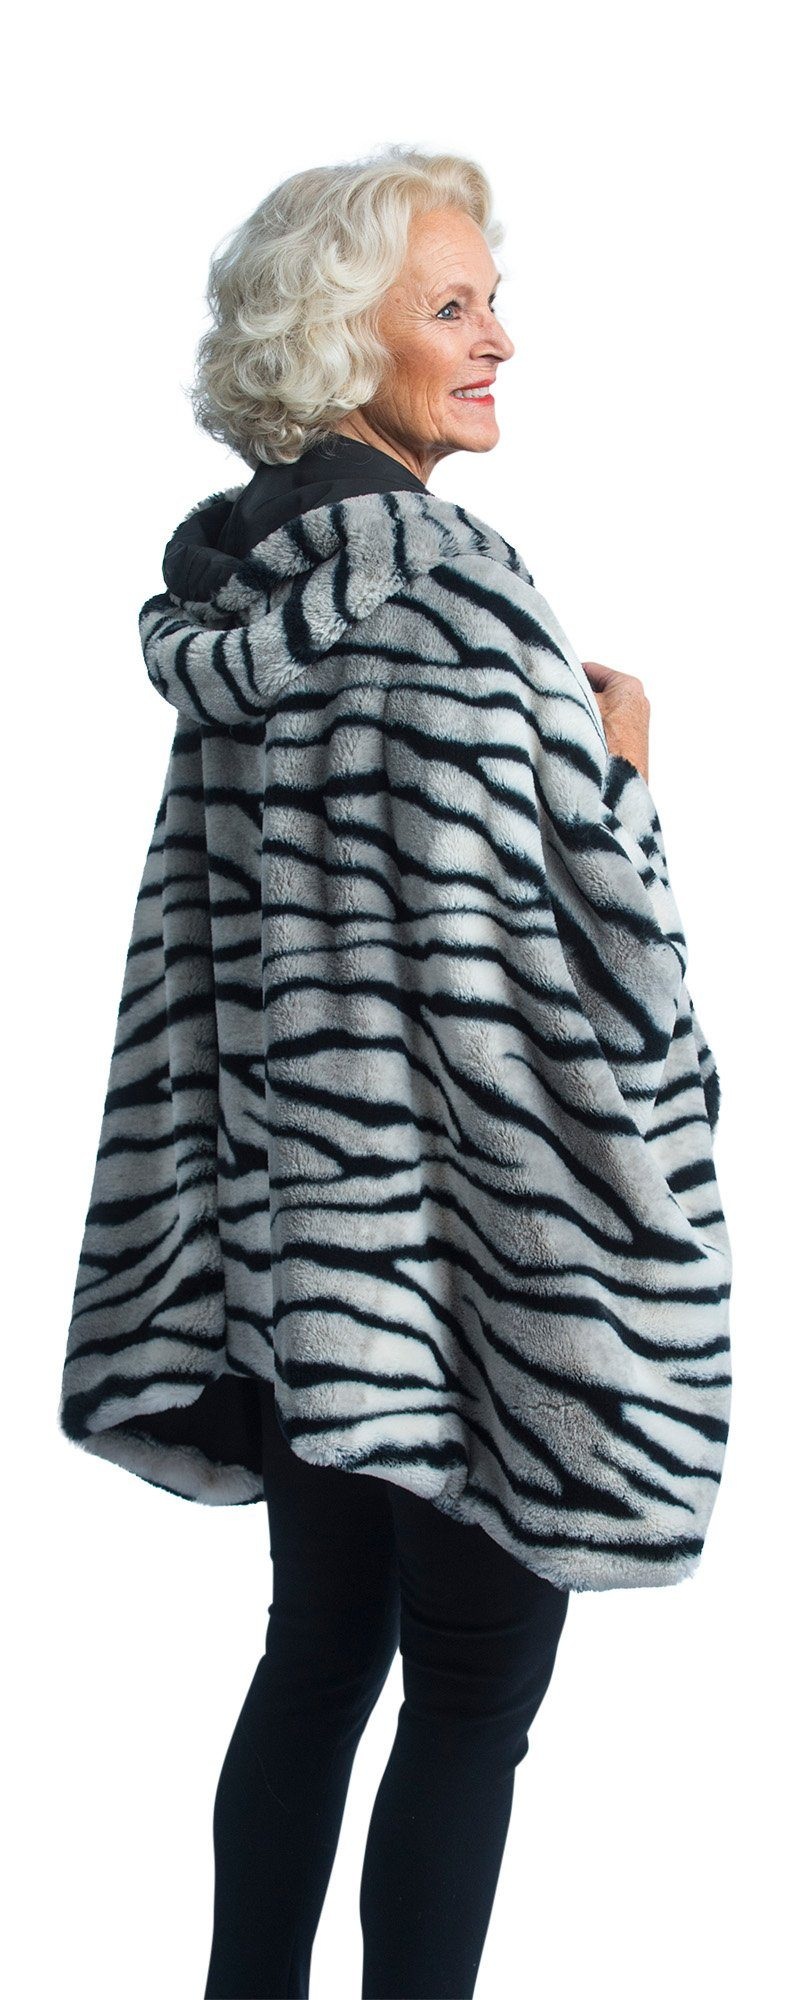 FurCaper Fur-Lined Rain Cape - Arctic Tiger Faux-Fur